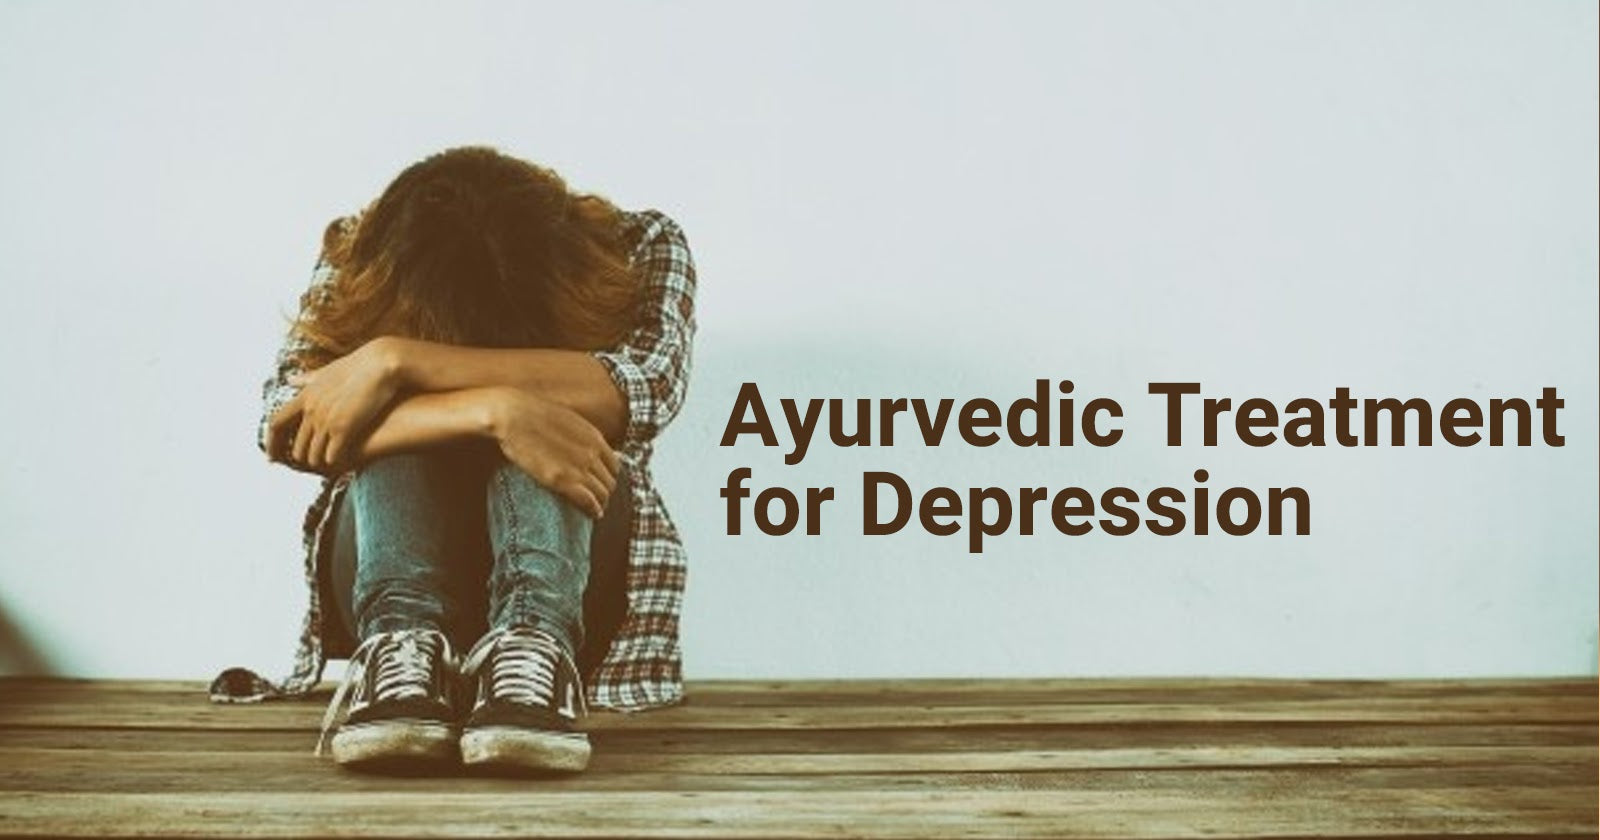 depression treatment in ayurveda